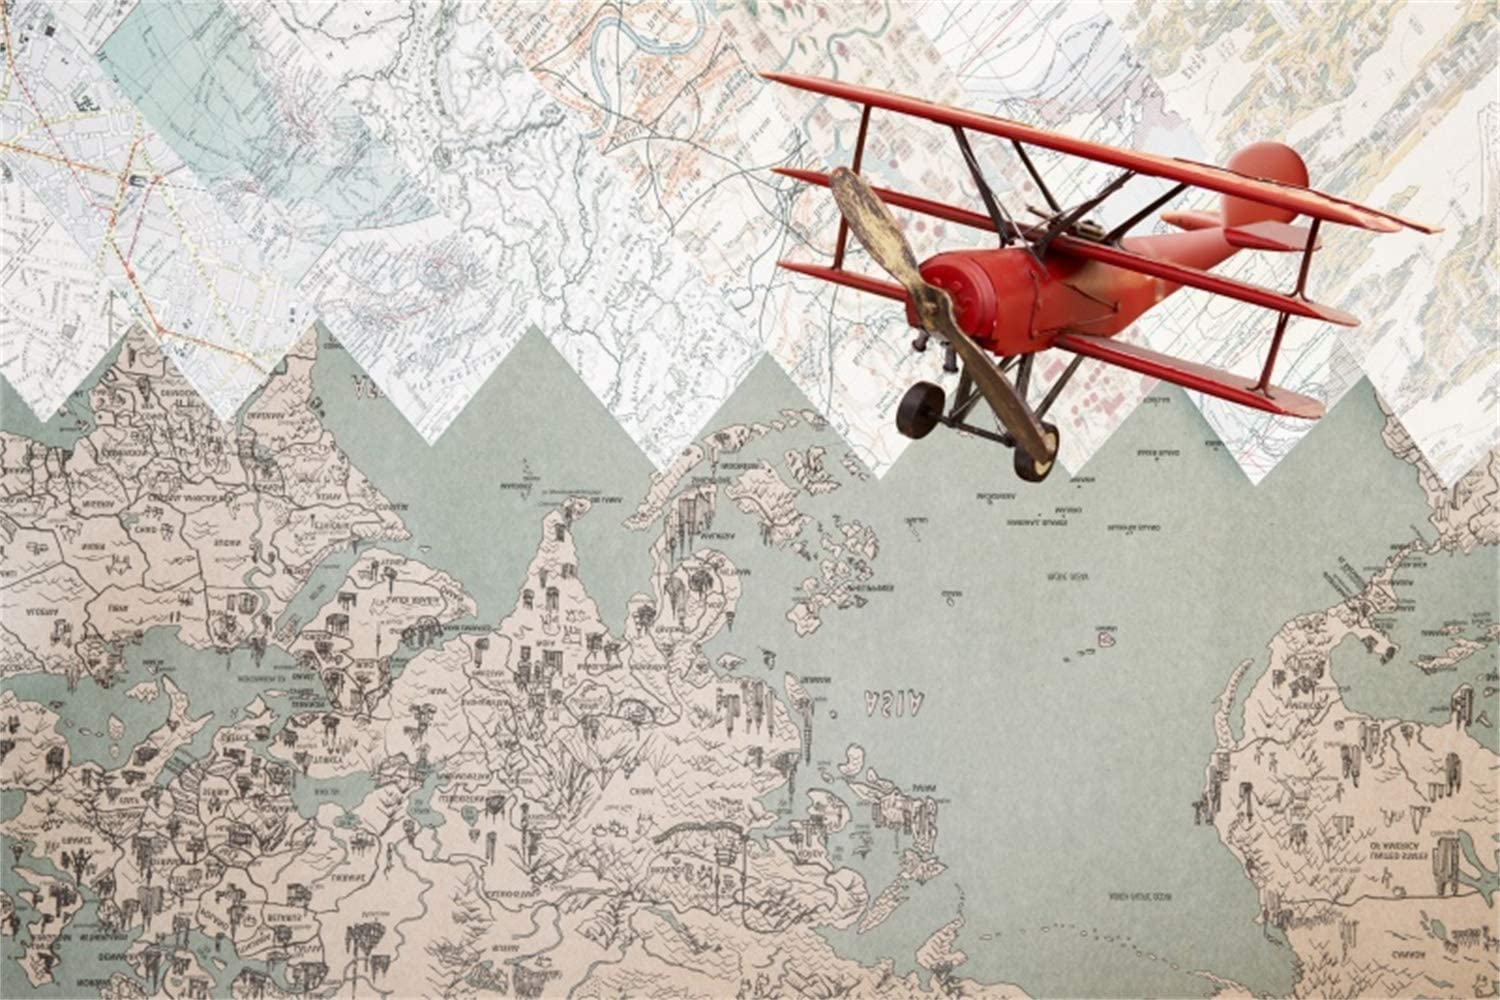 5x3ft Old Red Airplane Flying Across The Retro Map Scene Polyester Photography Background Nostalgia Style Backdrop Adult Portrait Shoot Indoor Decors Wallpaper Studio Props